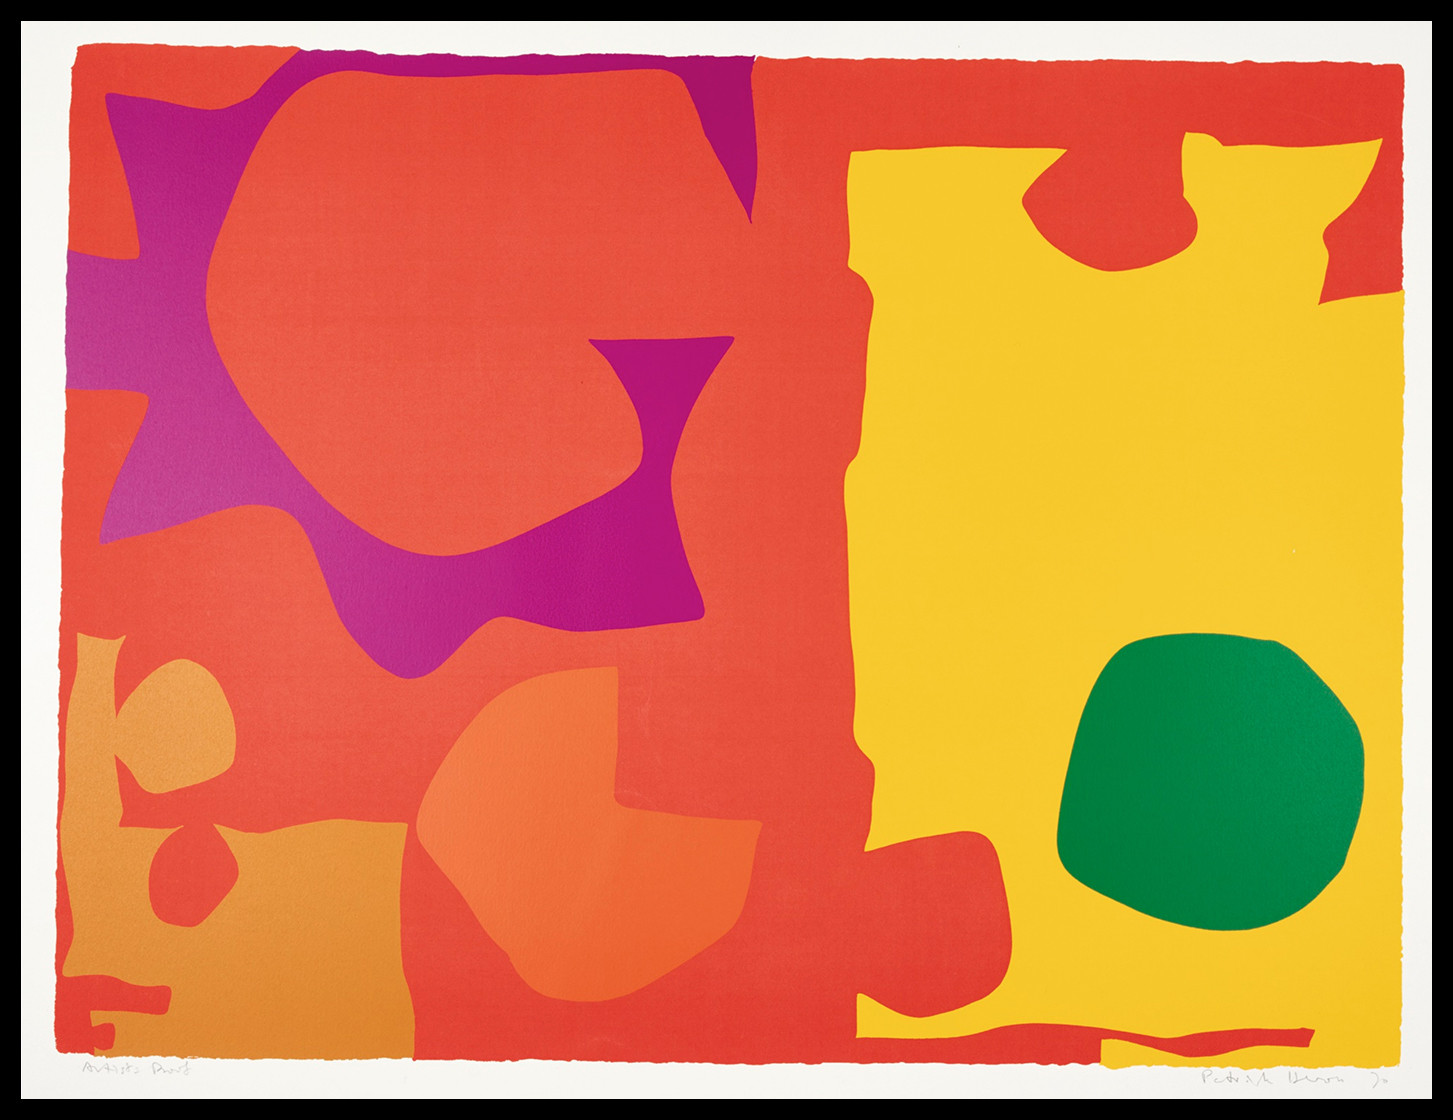 "<span class=""link fancybox-details-link""><a href=""/artists/93-patrick-heron-cbe/works/4014-patrick-heron-cbe-six-in-vermilion-with-green-in-yellow-1970/"">View Detail Page</a></span><div class=""artist""><strong>Patrick Heron CBE</strong></div> 1920 – 1999 <div class=""title""><em>Six in Vermilion with Green in Yellow</em>, 1970</div> <div class=""signed_and_dated"">signed in pencil, dated, inscribed Artist's Proof</div> <div class=""medium"">silkscreen print in colours on wove paper, with full margins</div> <div class=""dimensions"">image: 58.5 x 78 cm (23 x 30 3/4 in.)<br /> sheet: 71.6 x 101.5 cm (28 1/4 x 40in.)</div> <div class=""edition_details"">Artist's Proof aside from edition of 100</div><div class=""copyright_line"">© The Estate of Patrick Heron</div>"